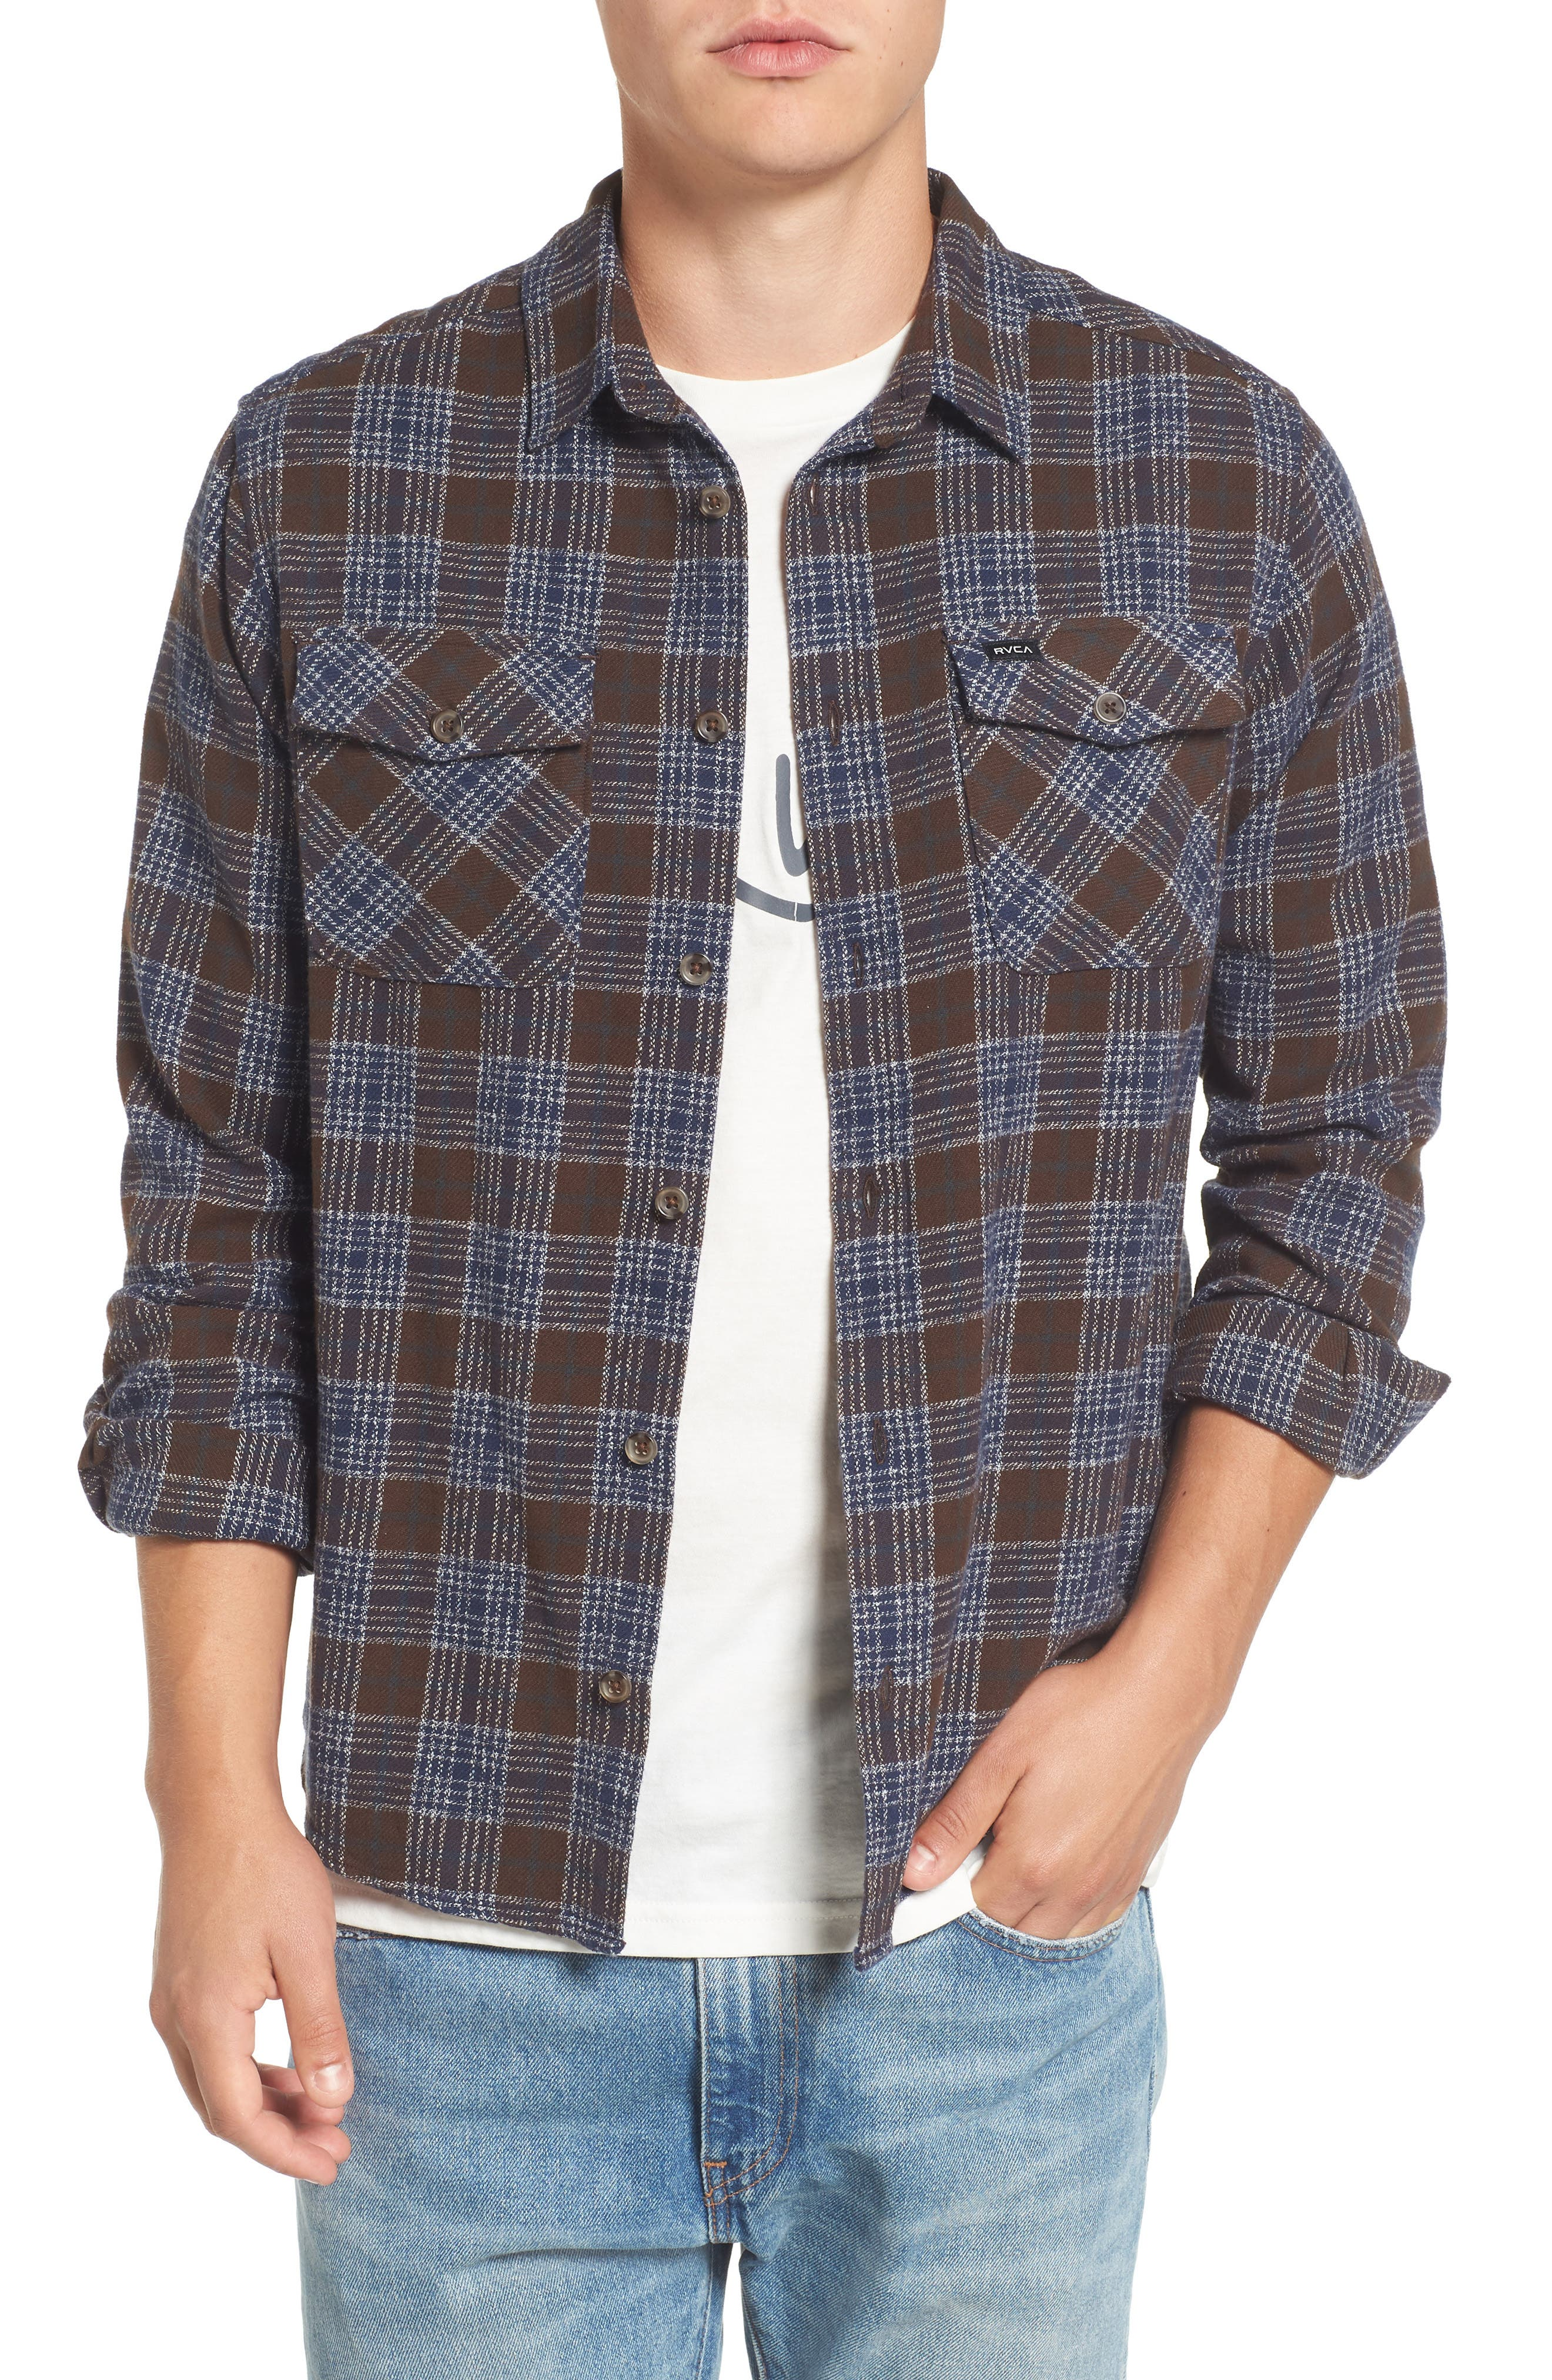 'That'll Work' Trim Fit Plaid Flannel Shirt,                             Main thumbnail 1, color,                             Dark Chocolate